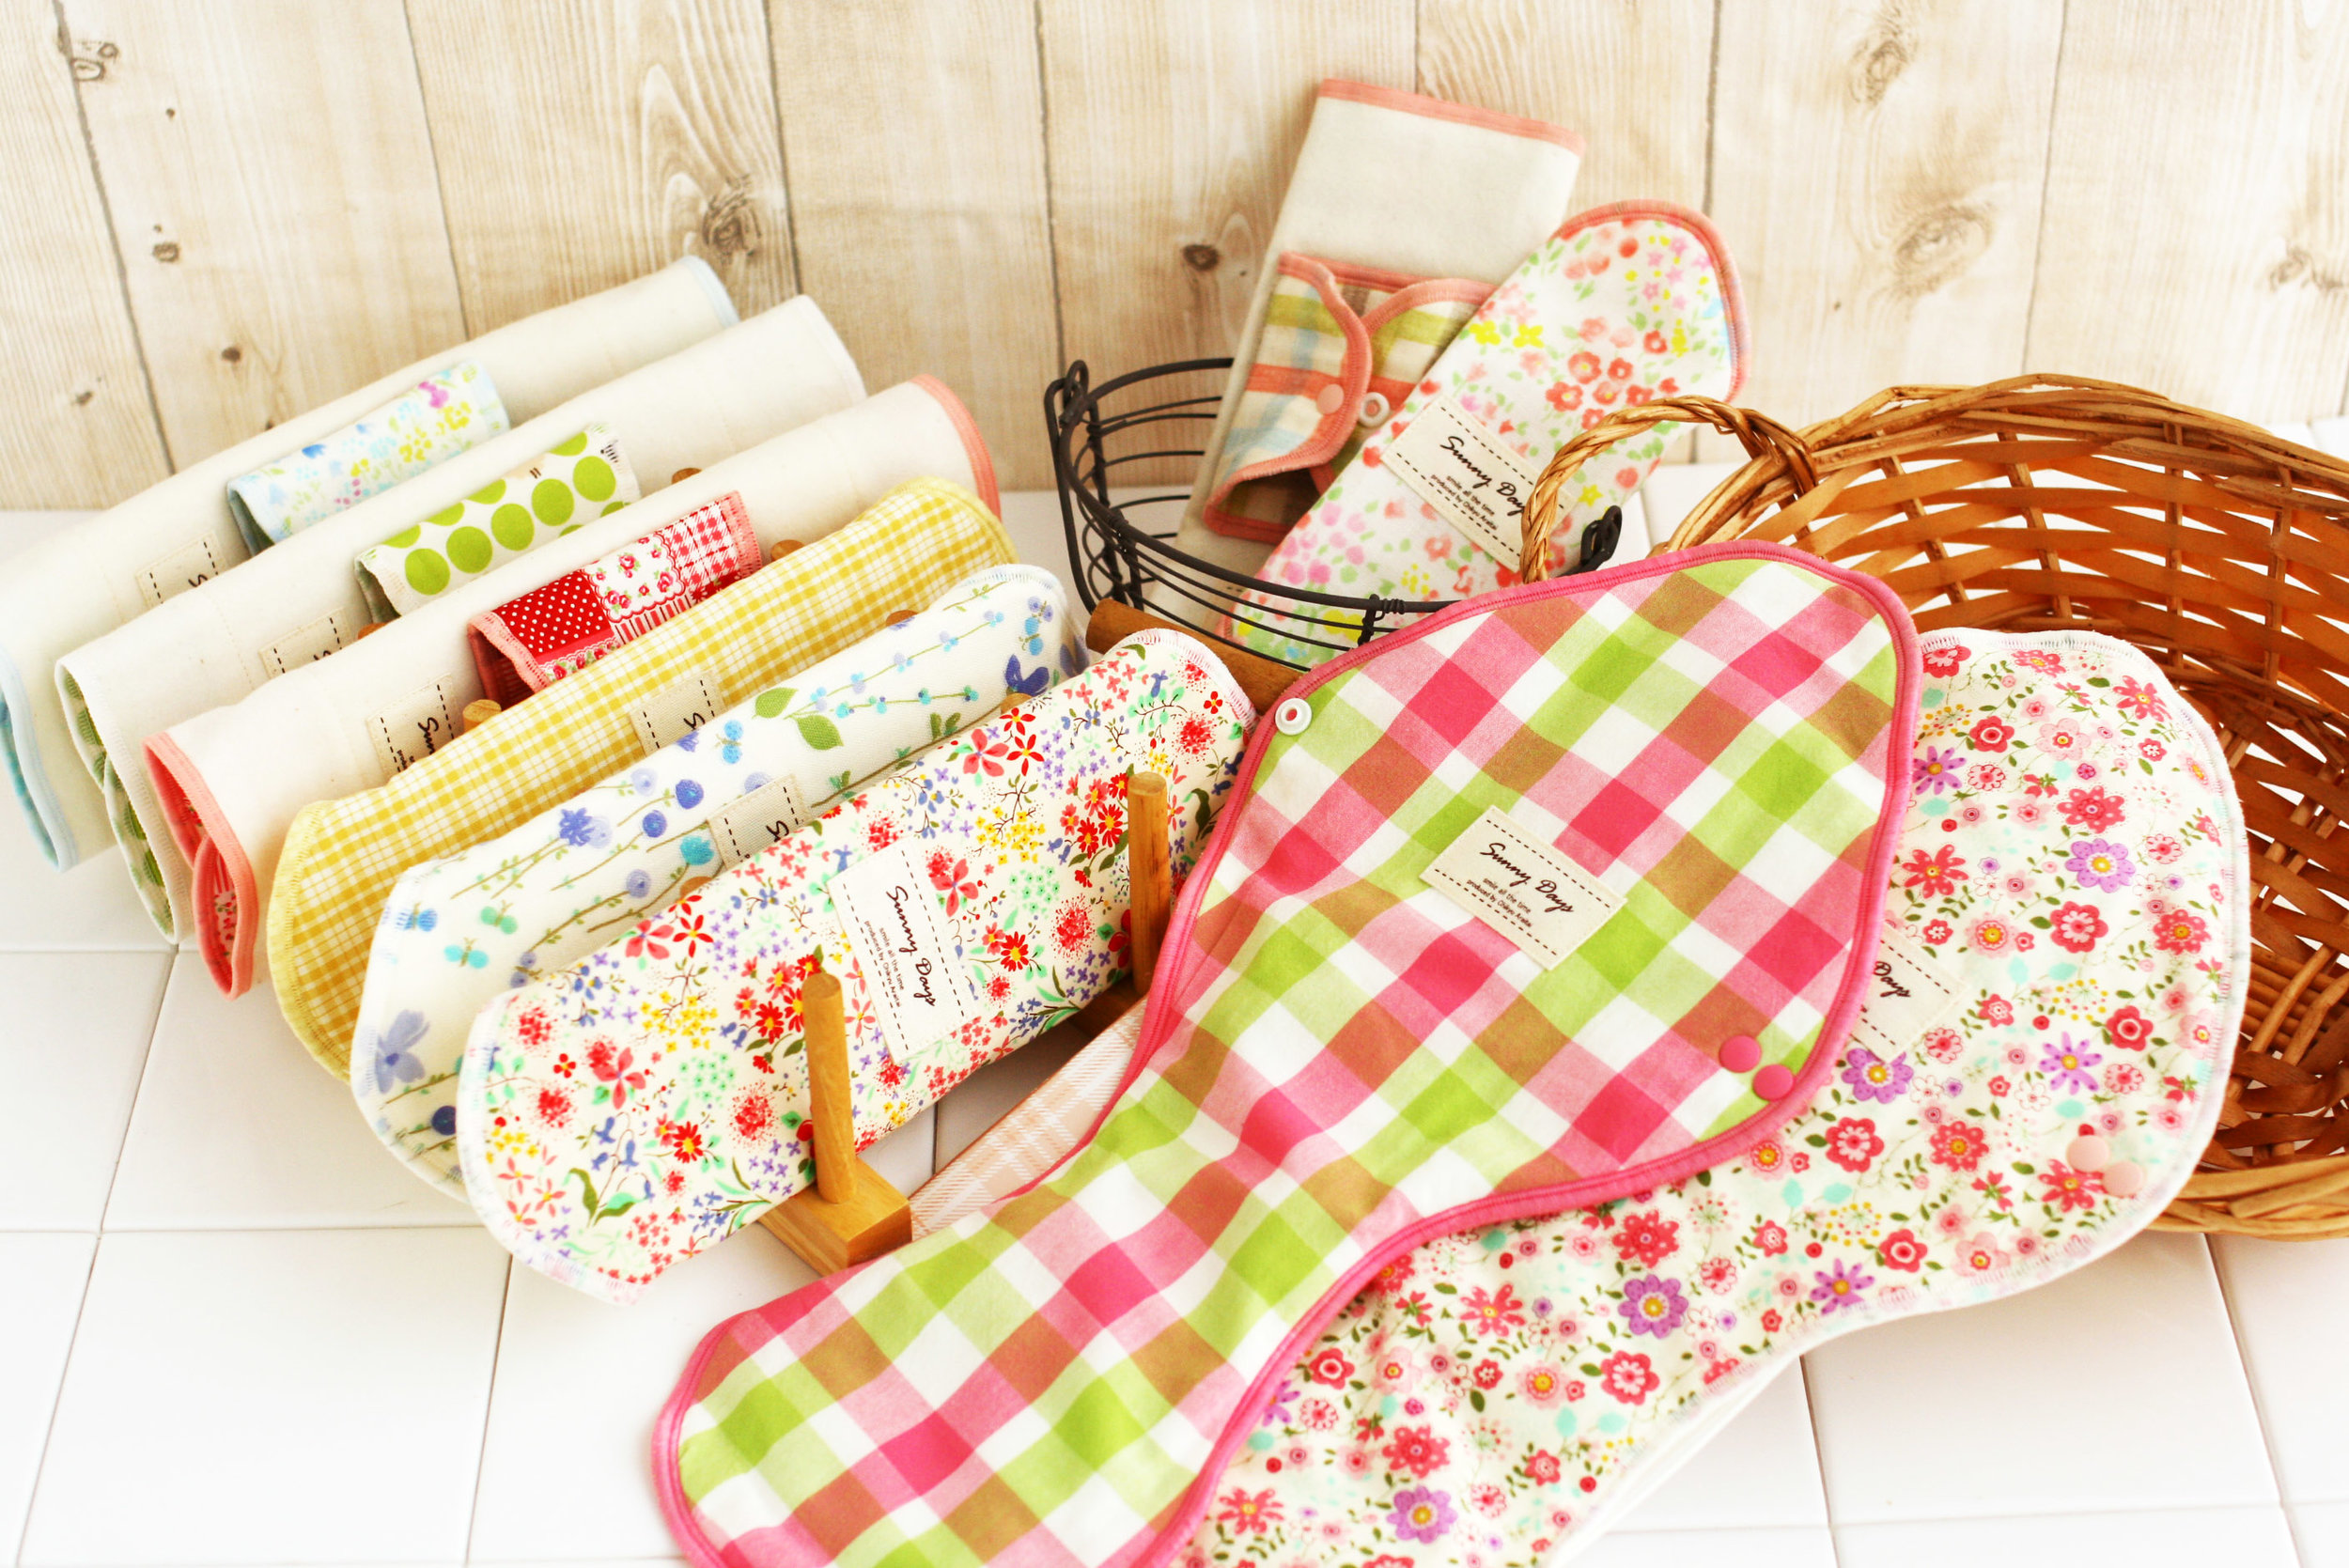 Cloth pads are a safe and eco-friendly alternative to disposable ones ( Source )